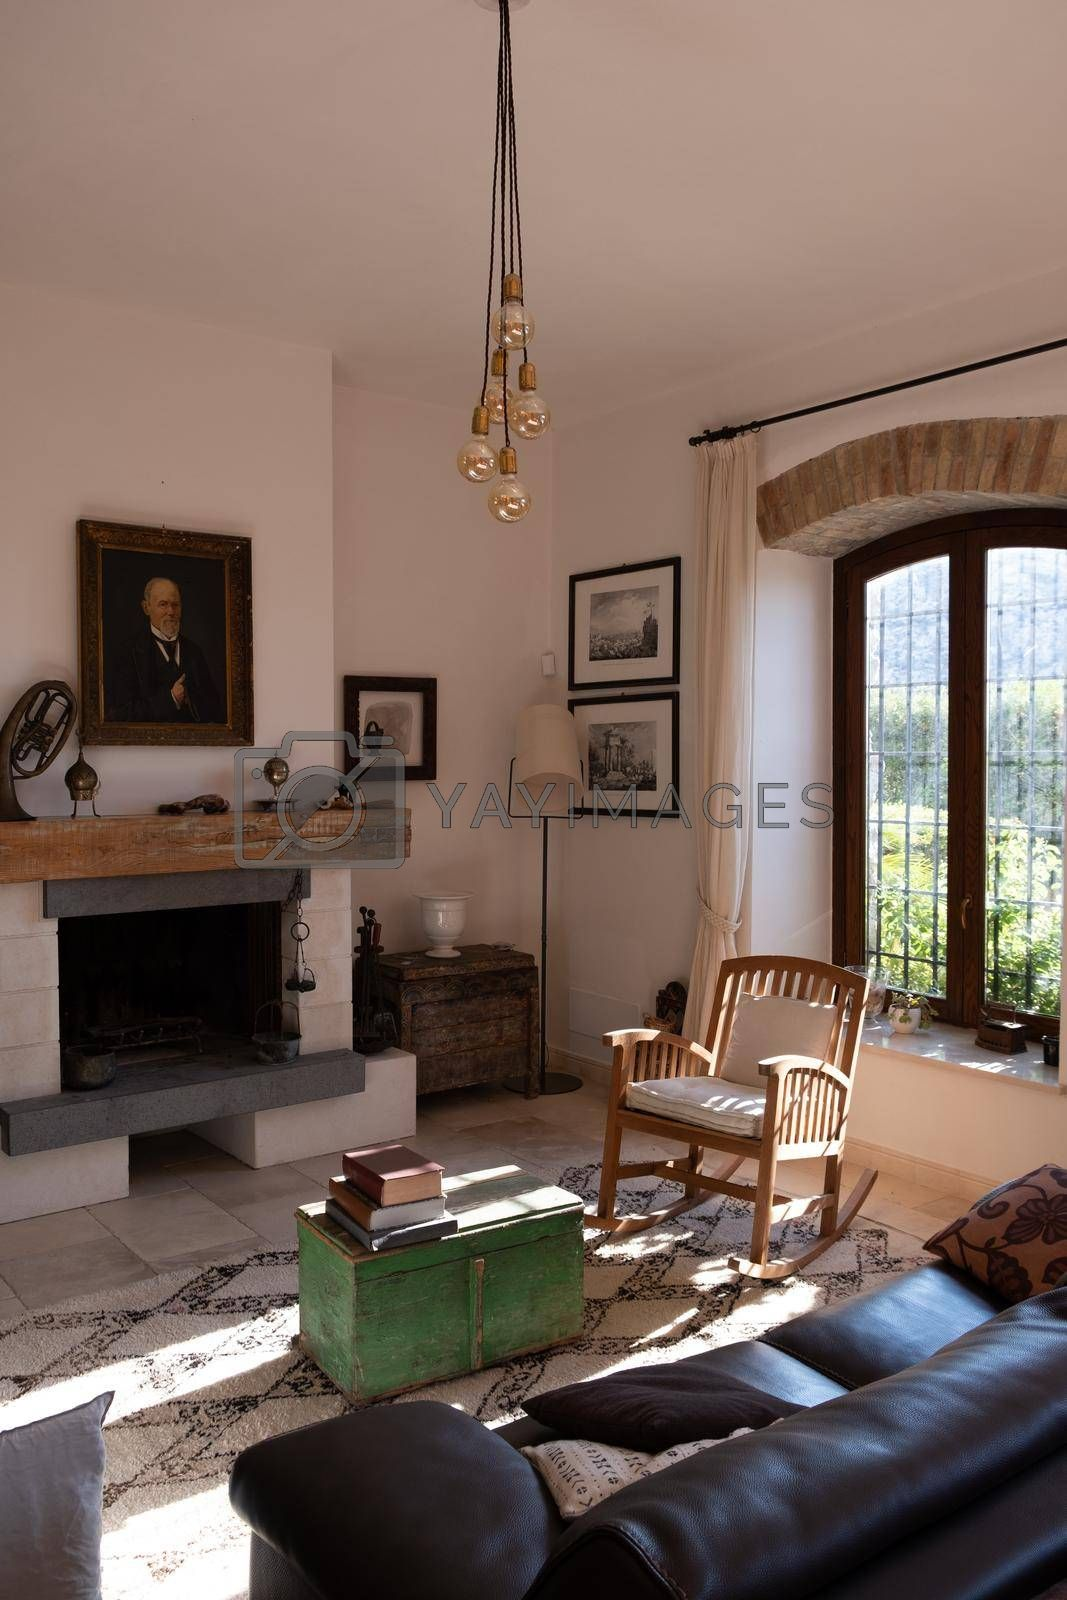 Agriturismo bed and breakfast at Sicily Italy, beautiful historical old farm renovated as BB Sicilia